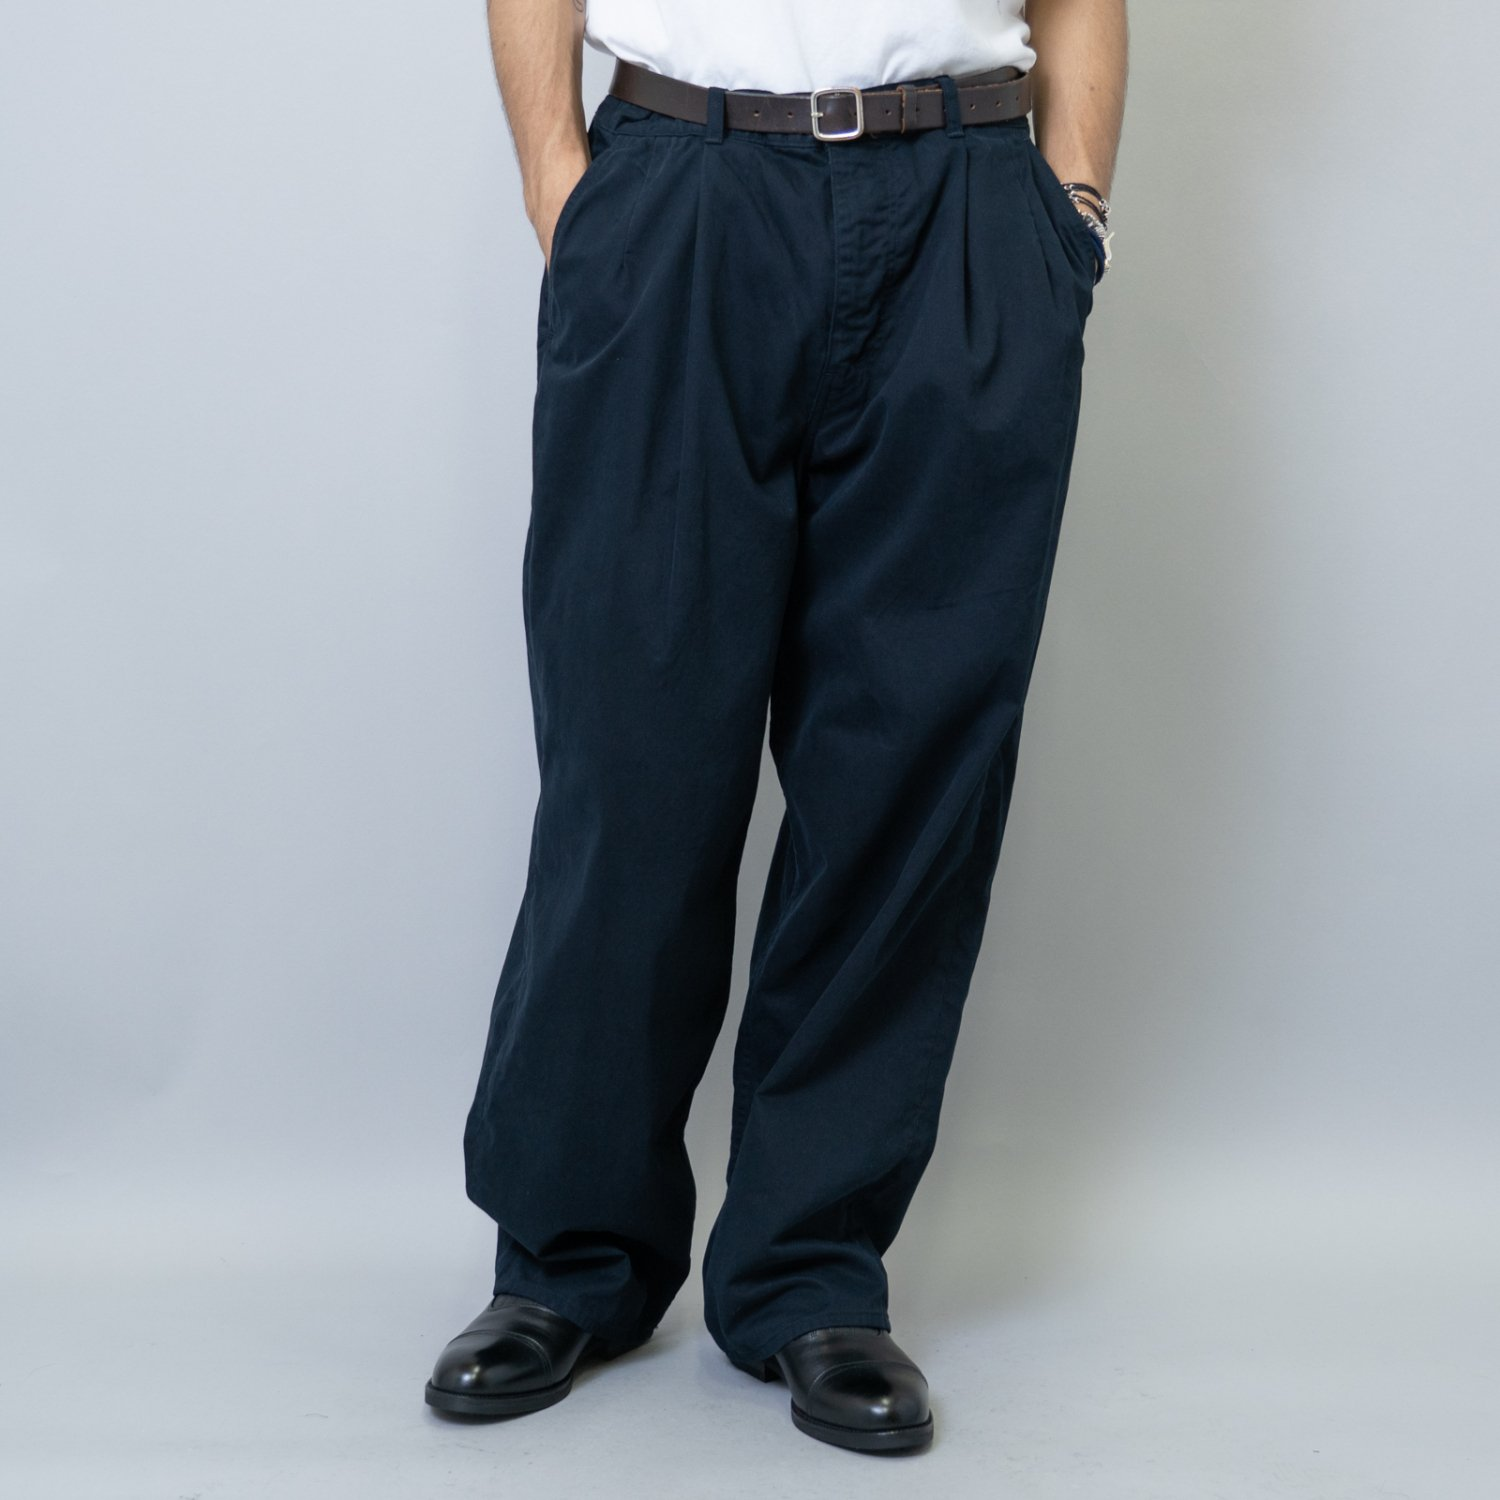 Graphpaper * Military Cloth 2Tuck Pants * Navy